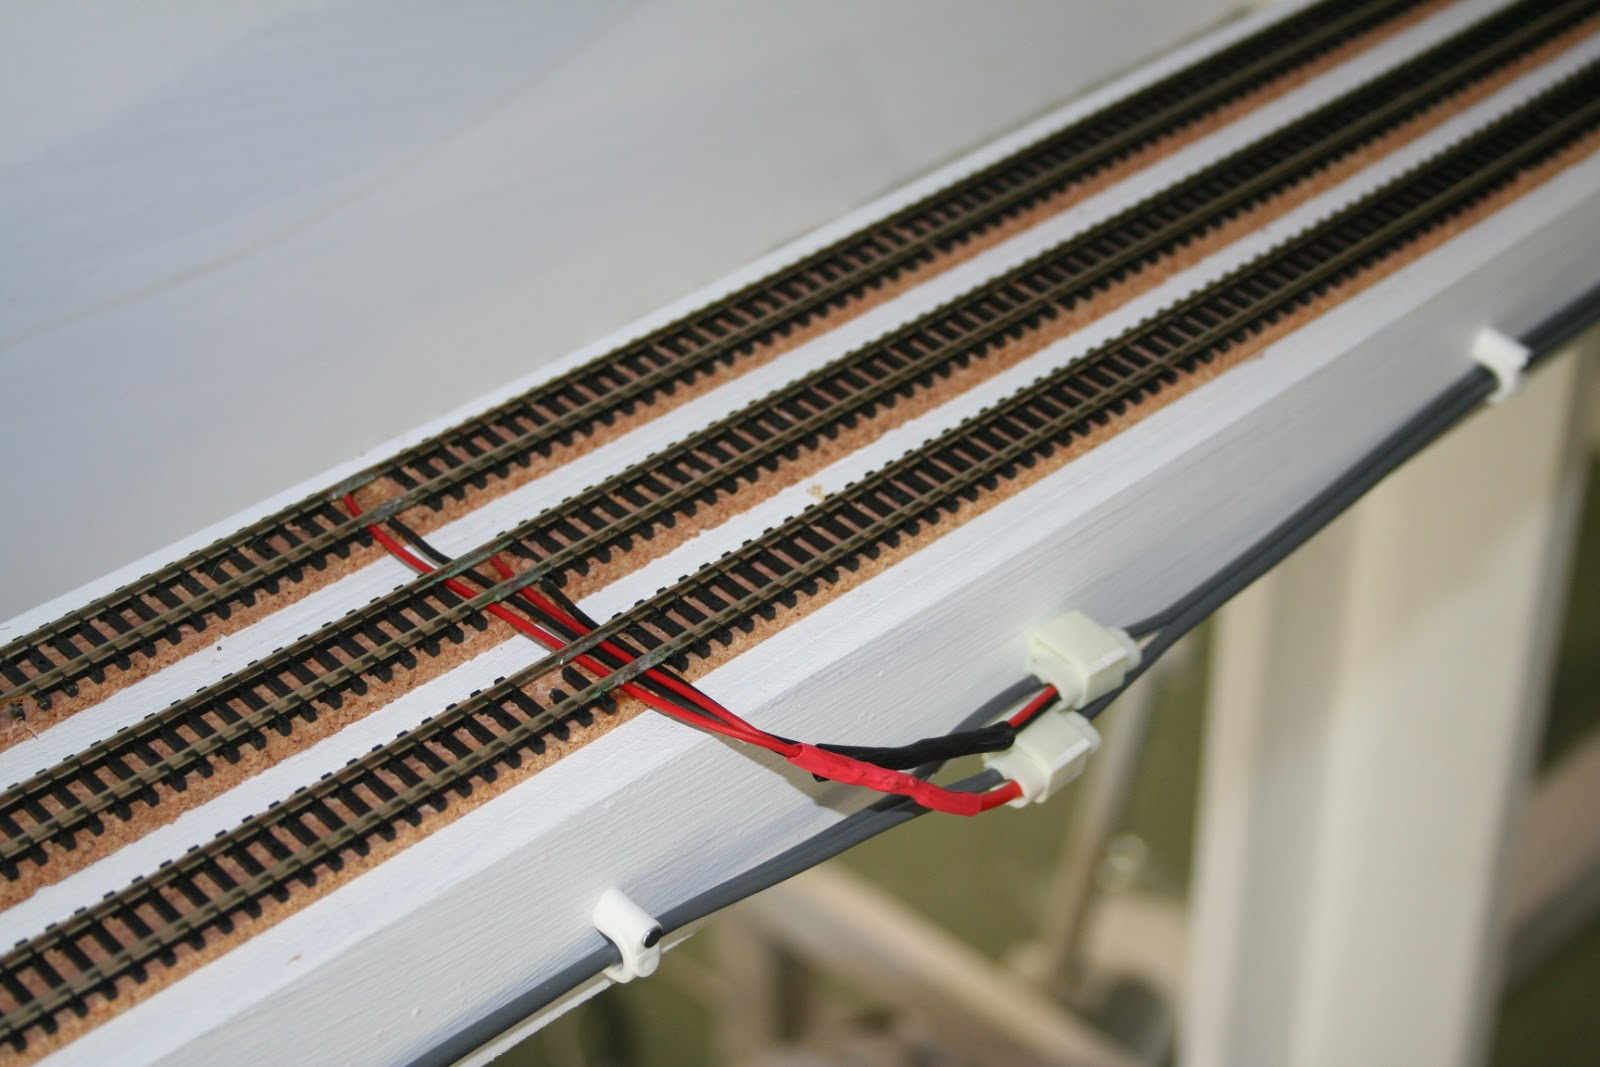 Ho Dcc Track Wiring Diagram Schemes Switch Will Be A Thing U2022 Rh Exploreandmore Co Uk Basics Scale System